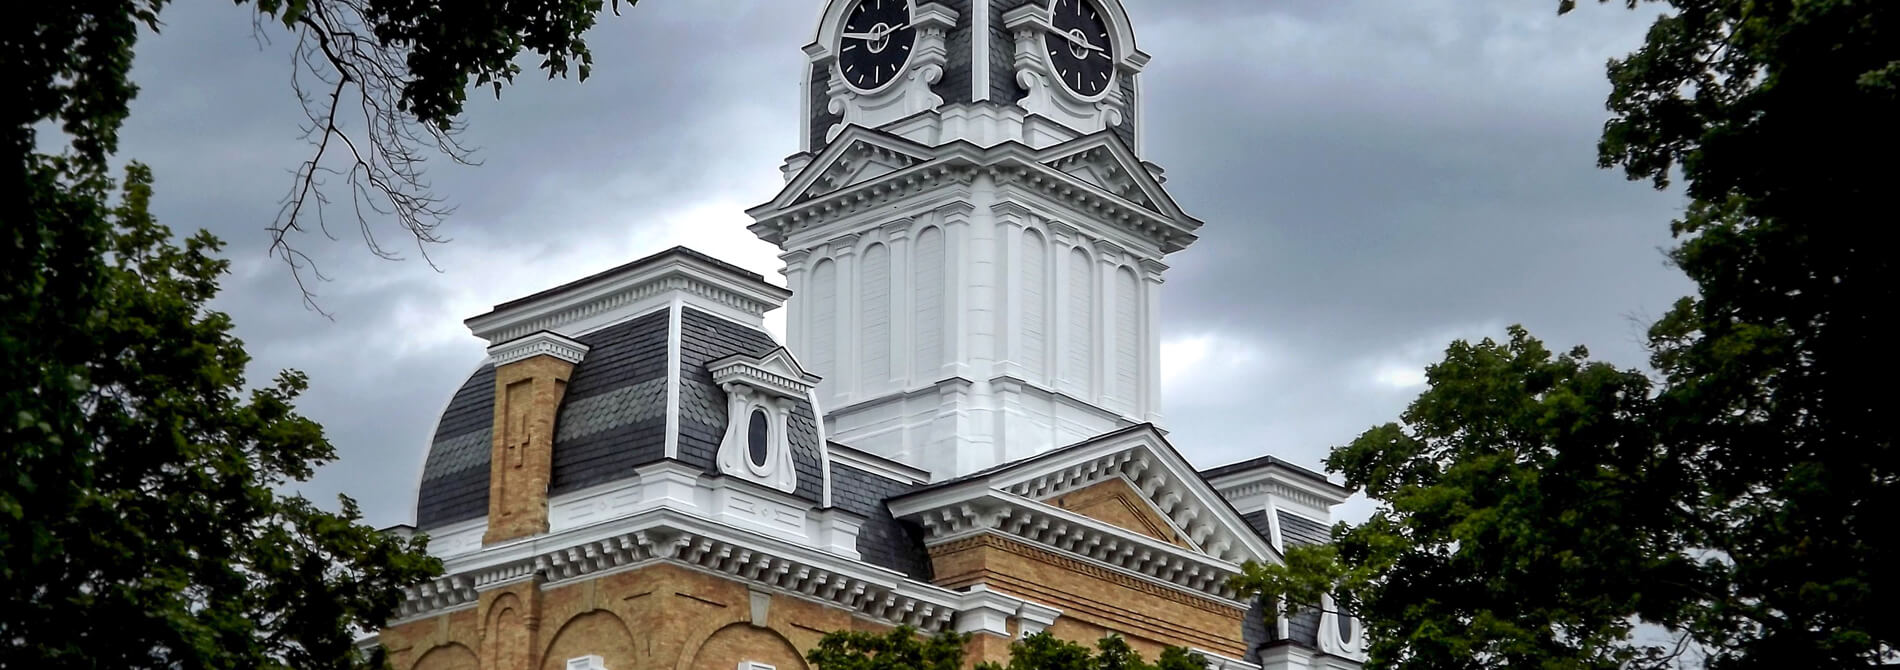 the clock tower at Hillsdale college surrounded by trees against a gray sky